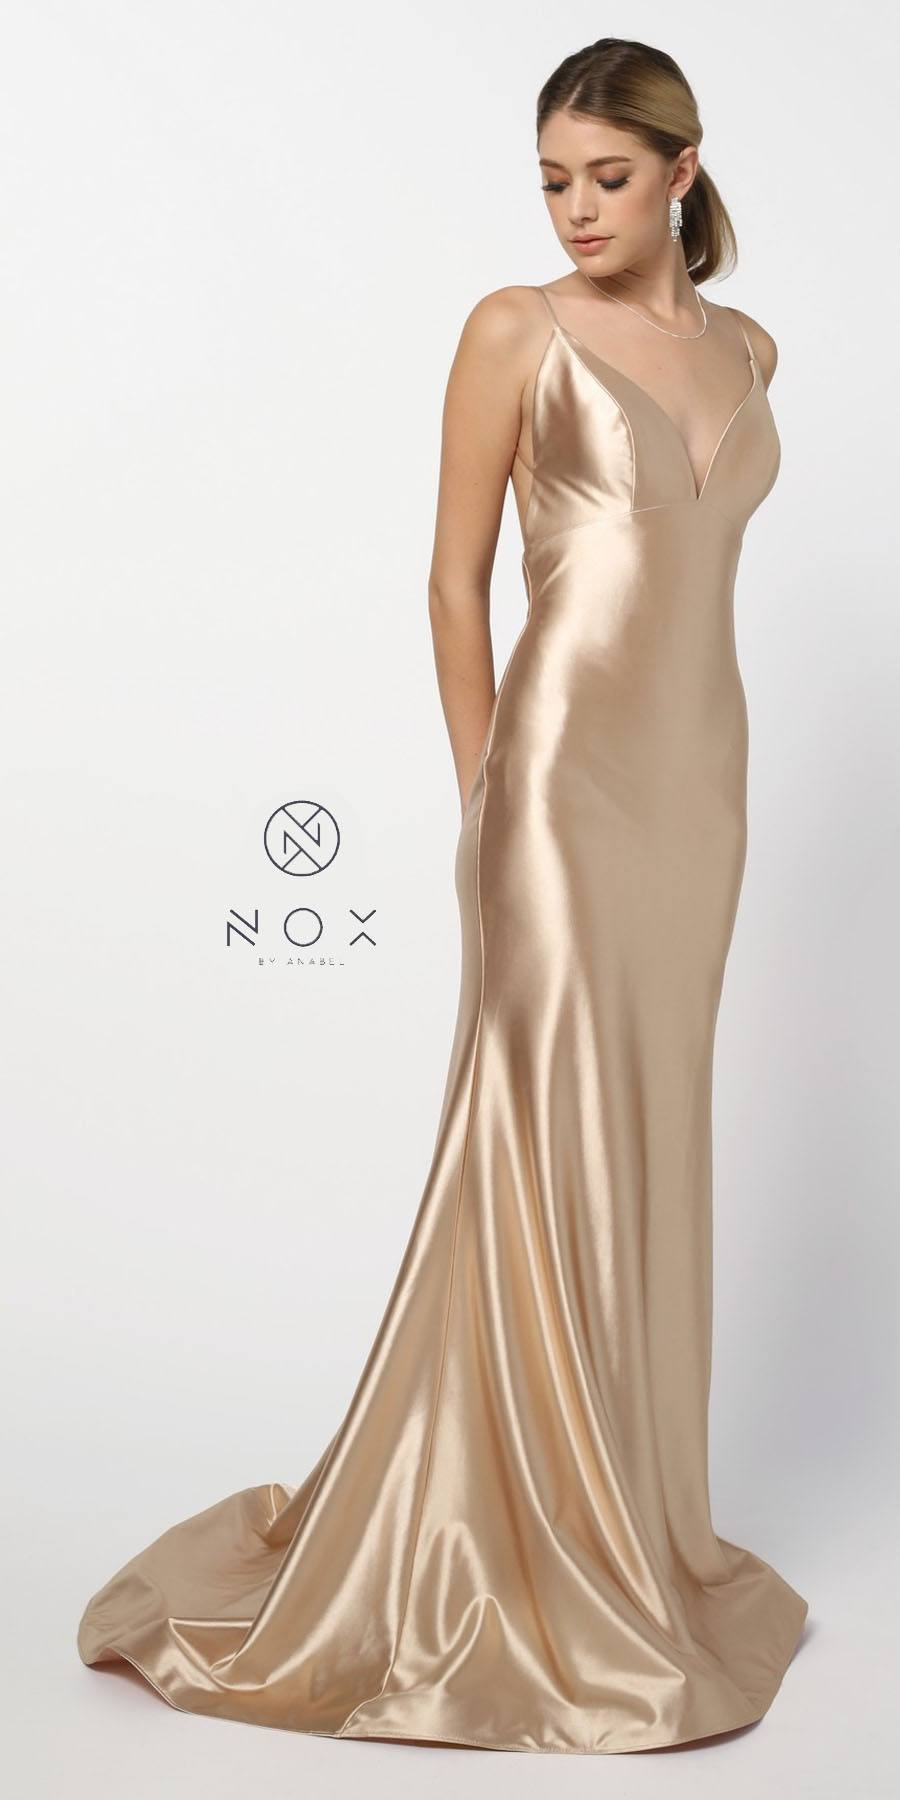 899bad2a14 Classic Long Satin Prom Dress With V Neckline - Data Dynamic AG